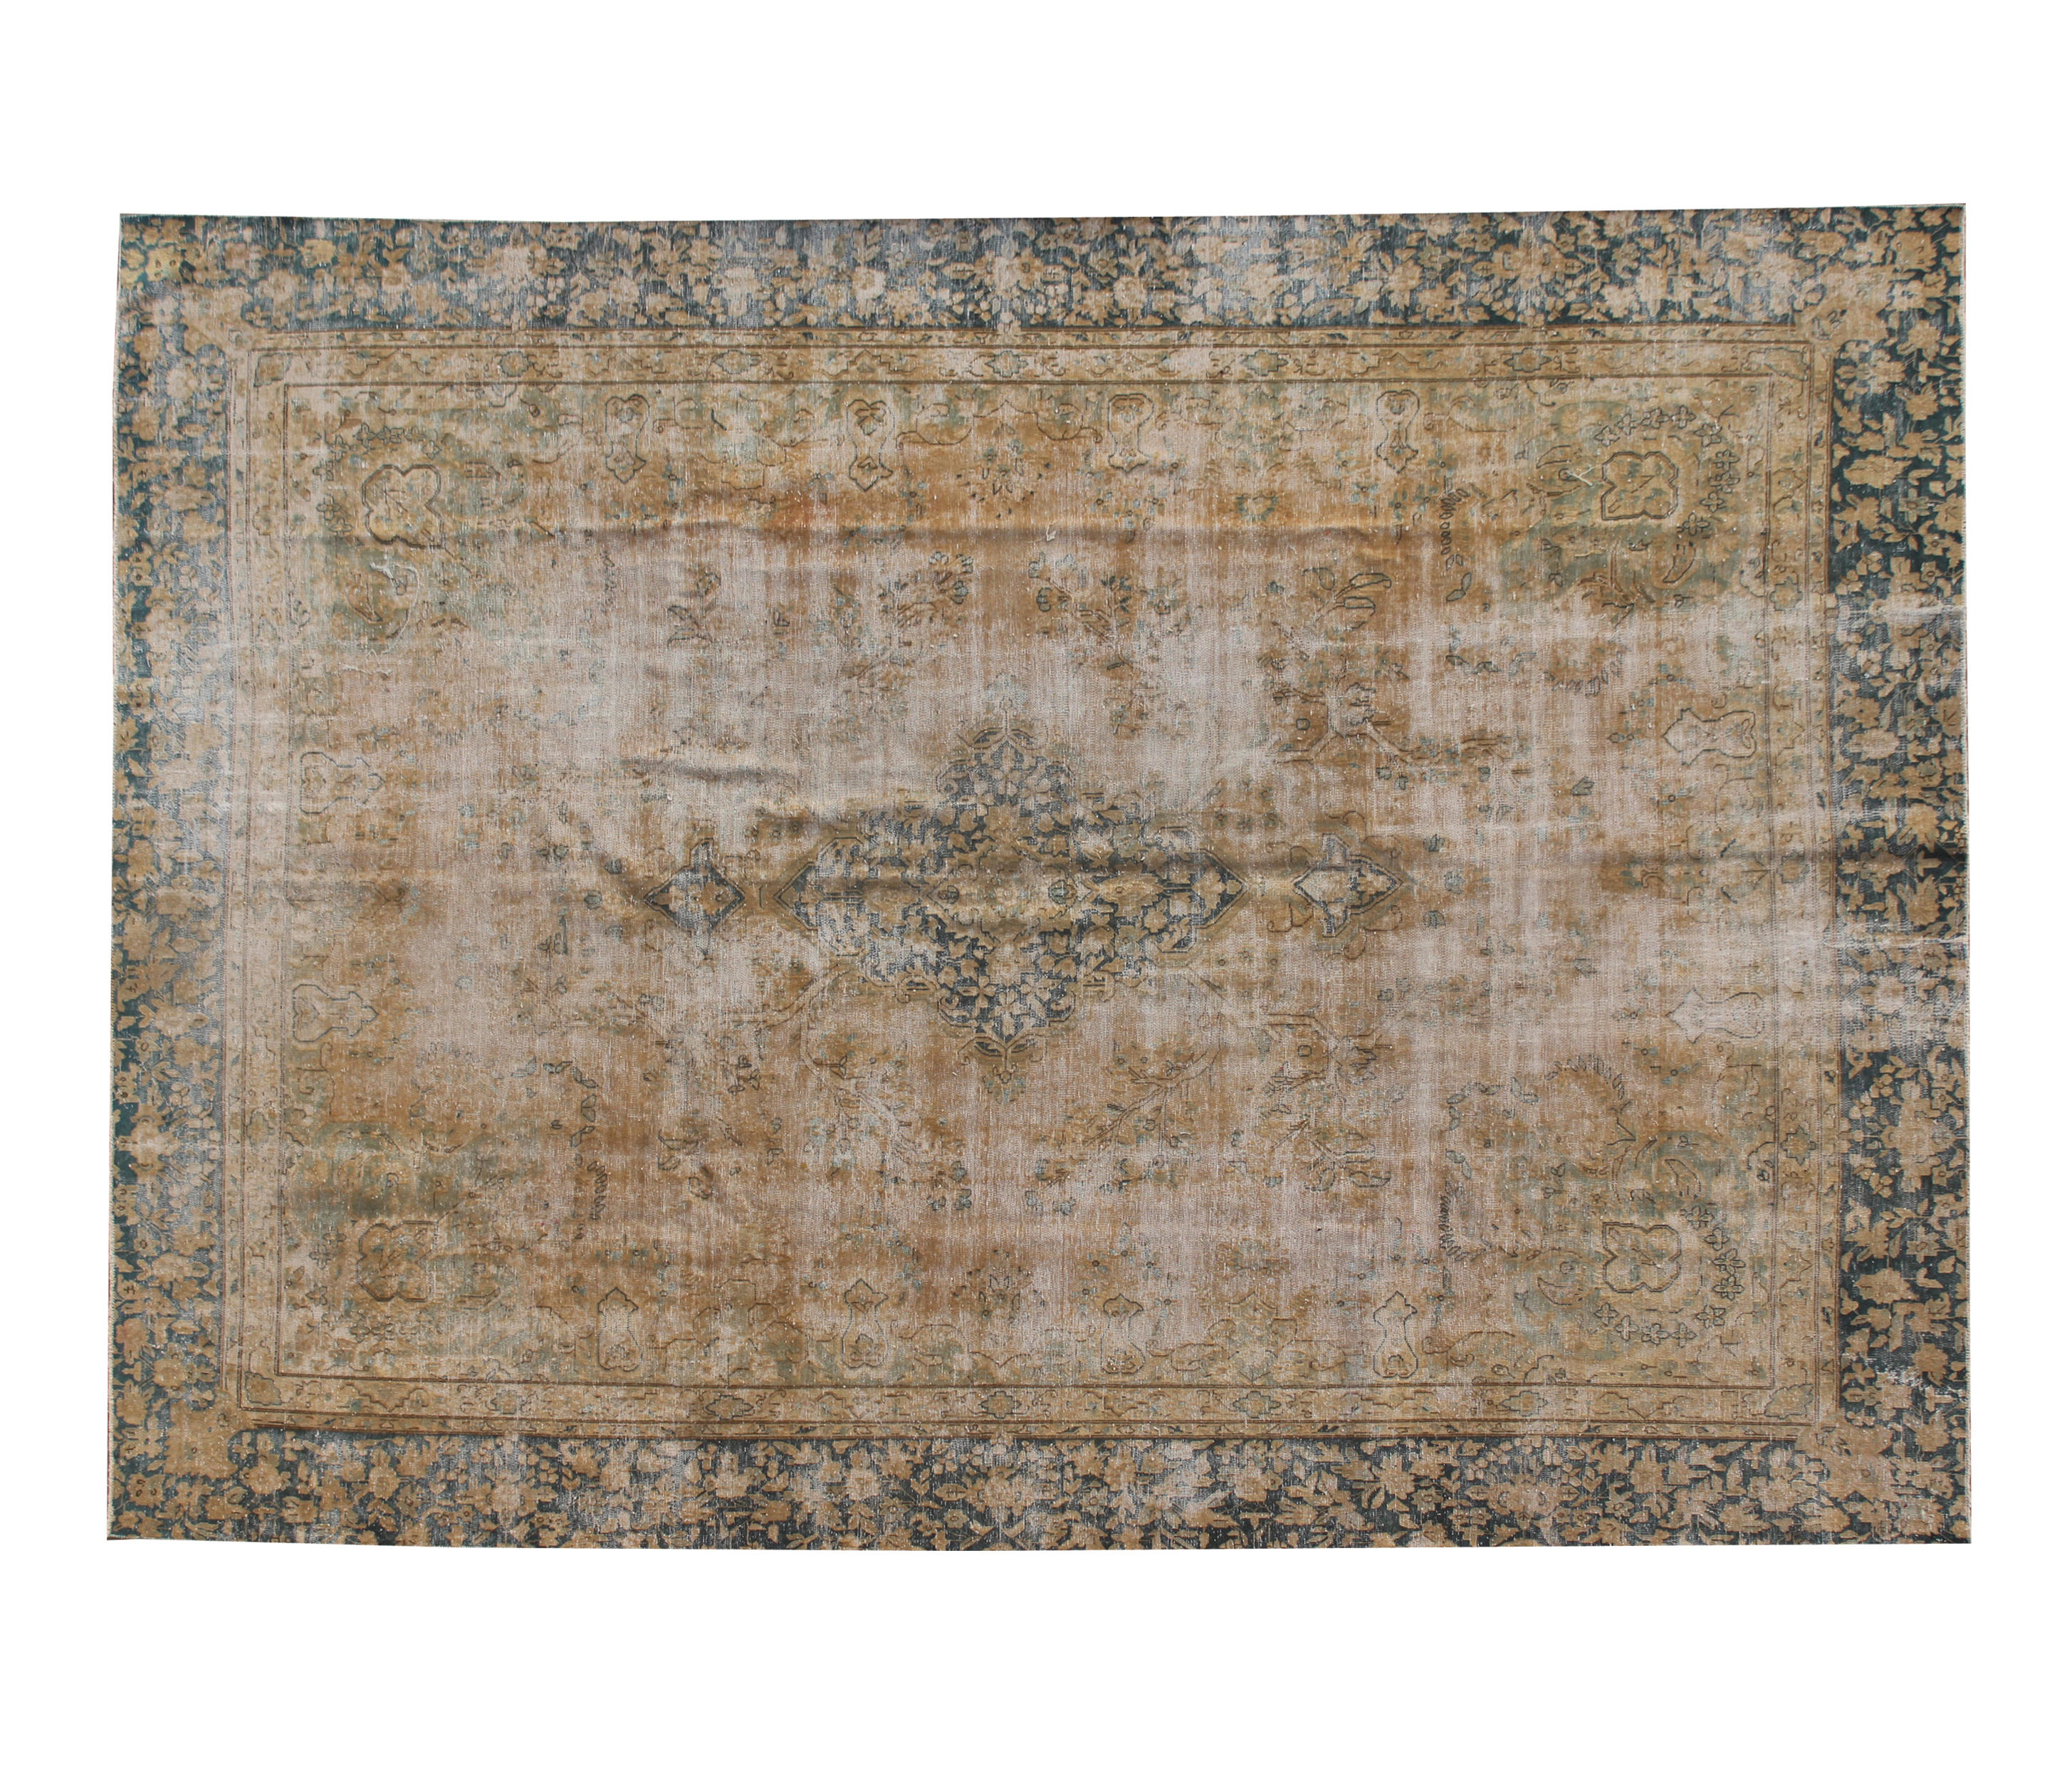 pure 2 0 id 2071 rugs designer rugs from miinu. Black Bedroom Furniture Sets. Home Design Ideas